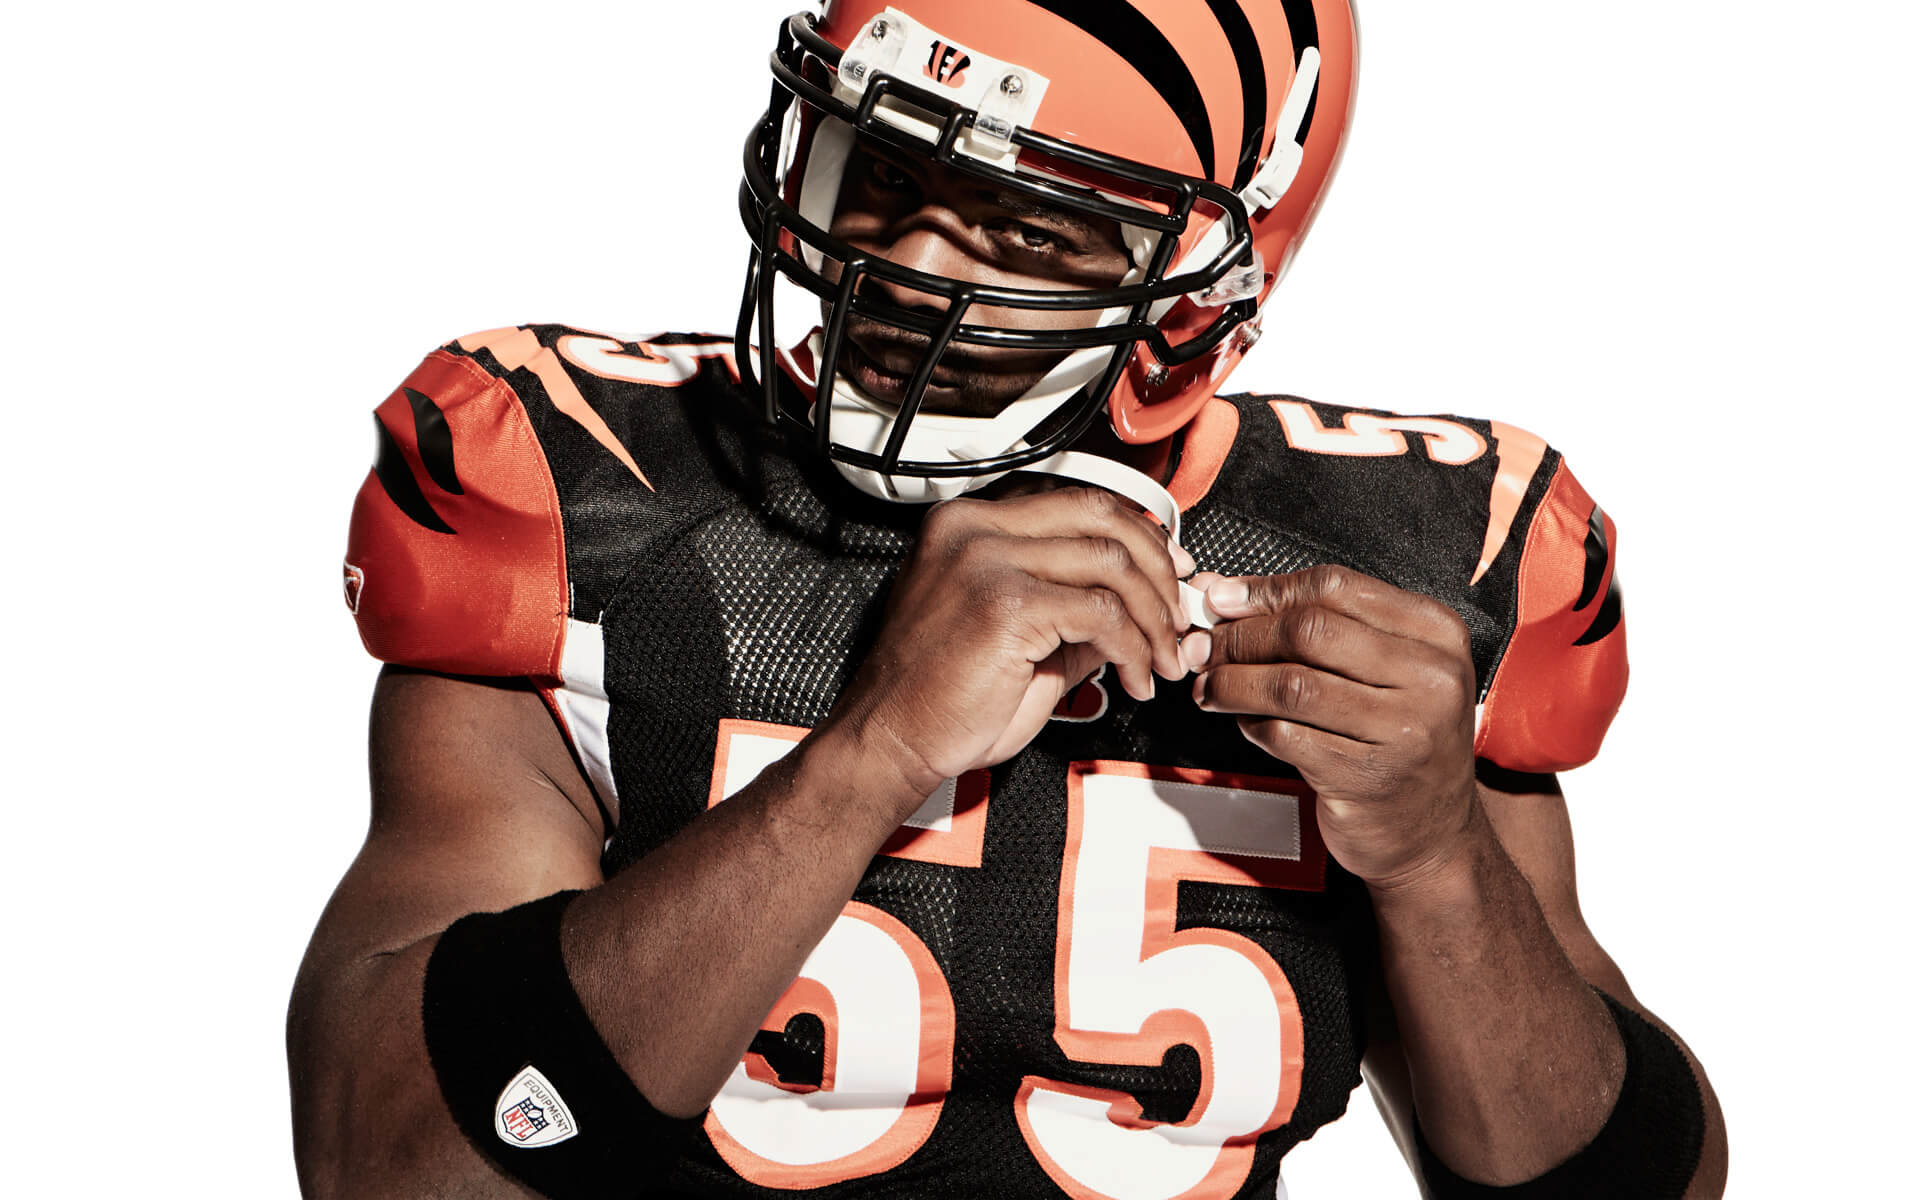 Unified Content, Unified Content Toronto, Aaron Cobb, Verizon, Football, Studio, Portrait, Action, Athlete, Studio Portrait, Athlete Portrait, Keith Rivers, Bengals, Cincinnati Bengals, American Football, NFL